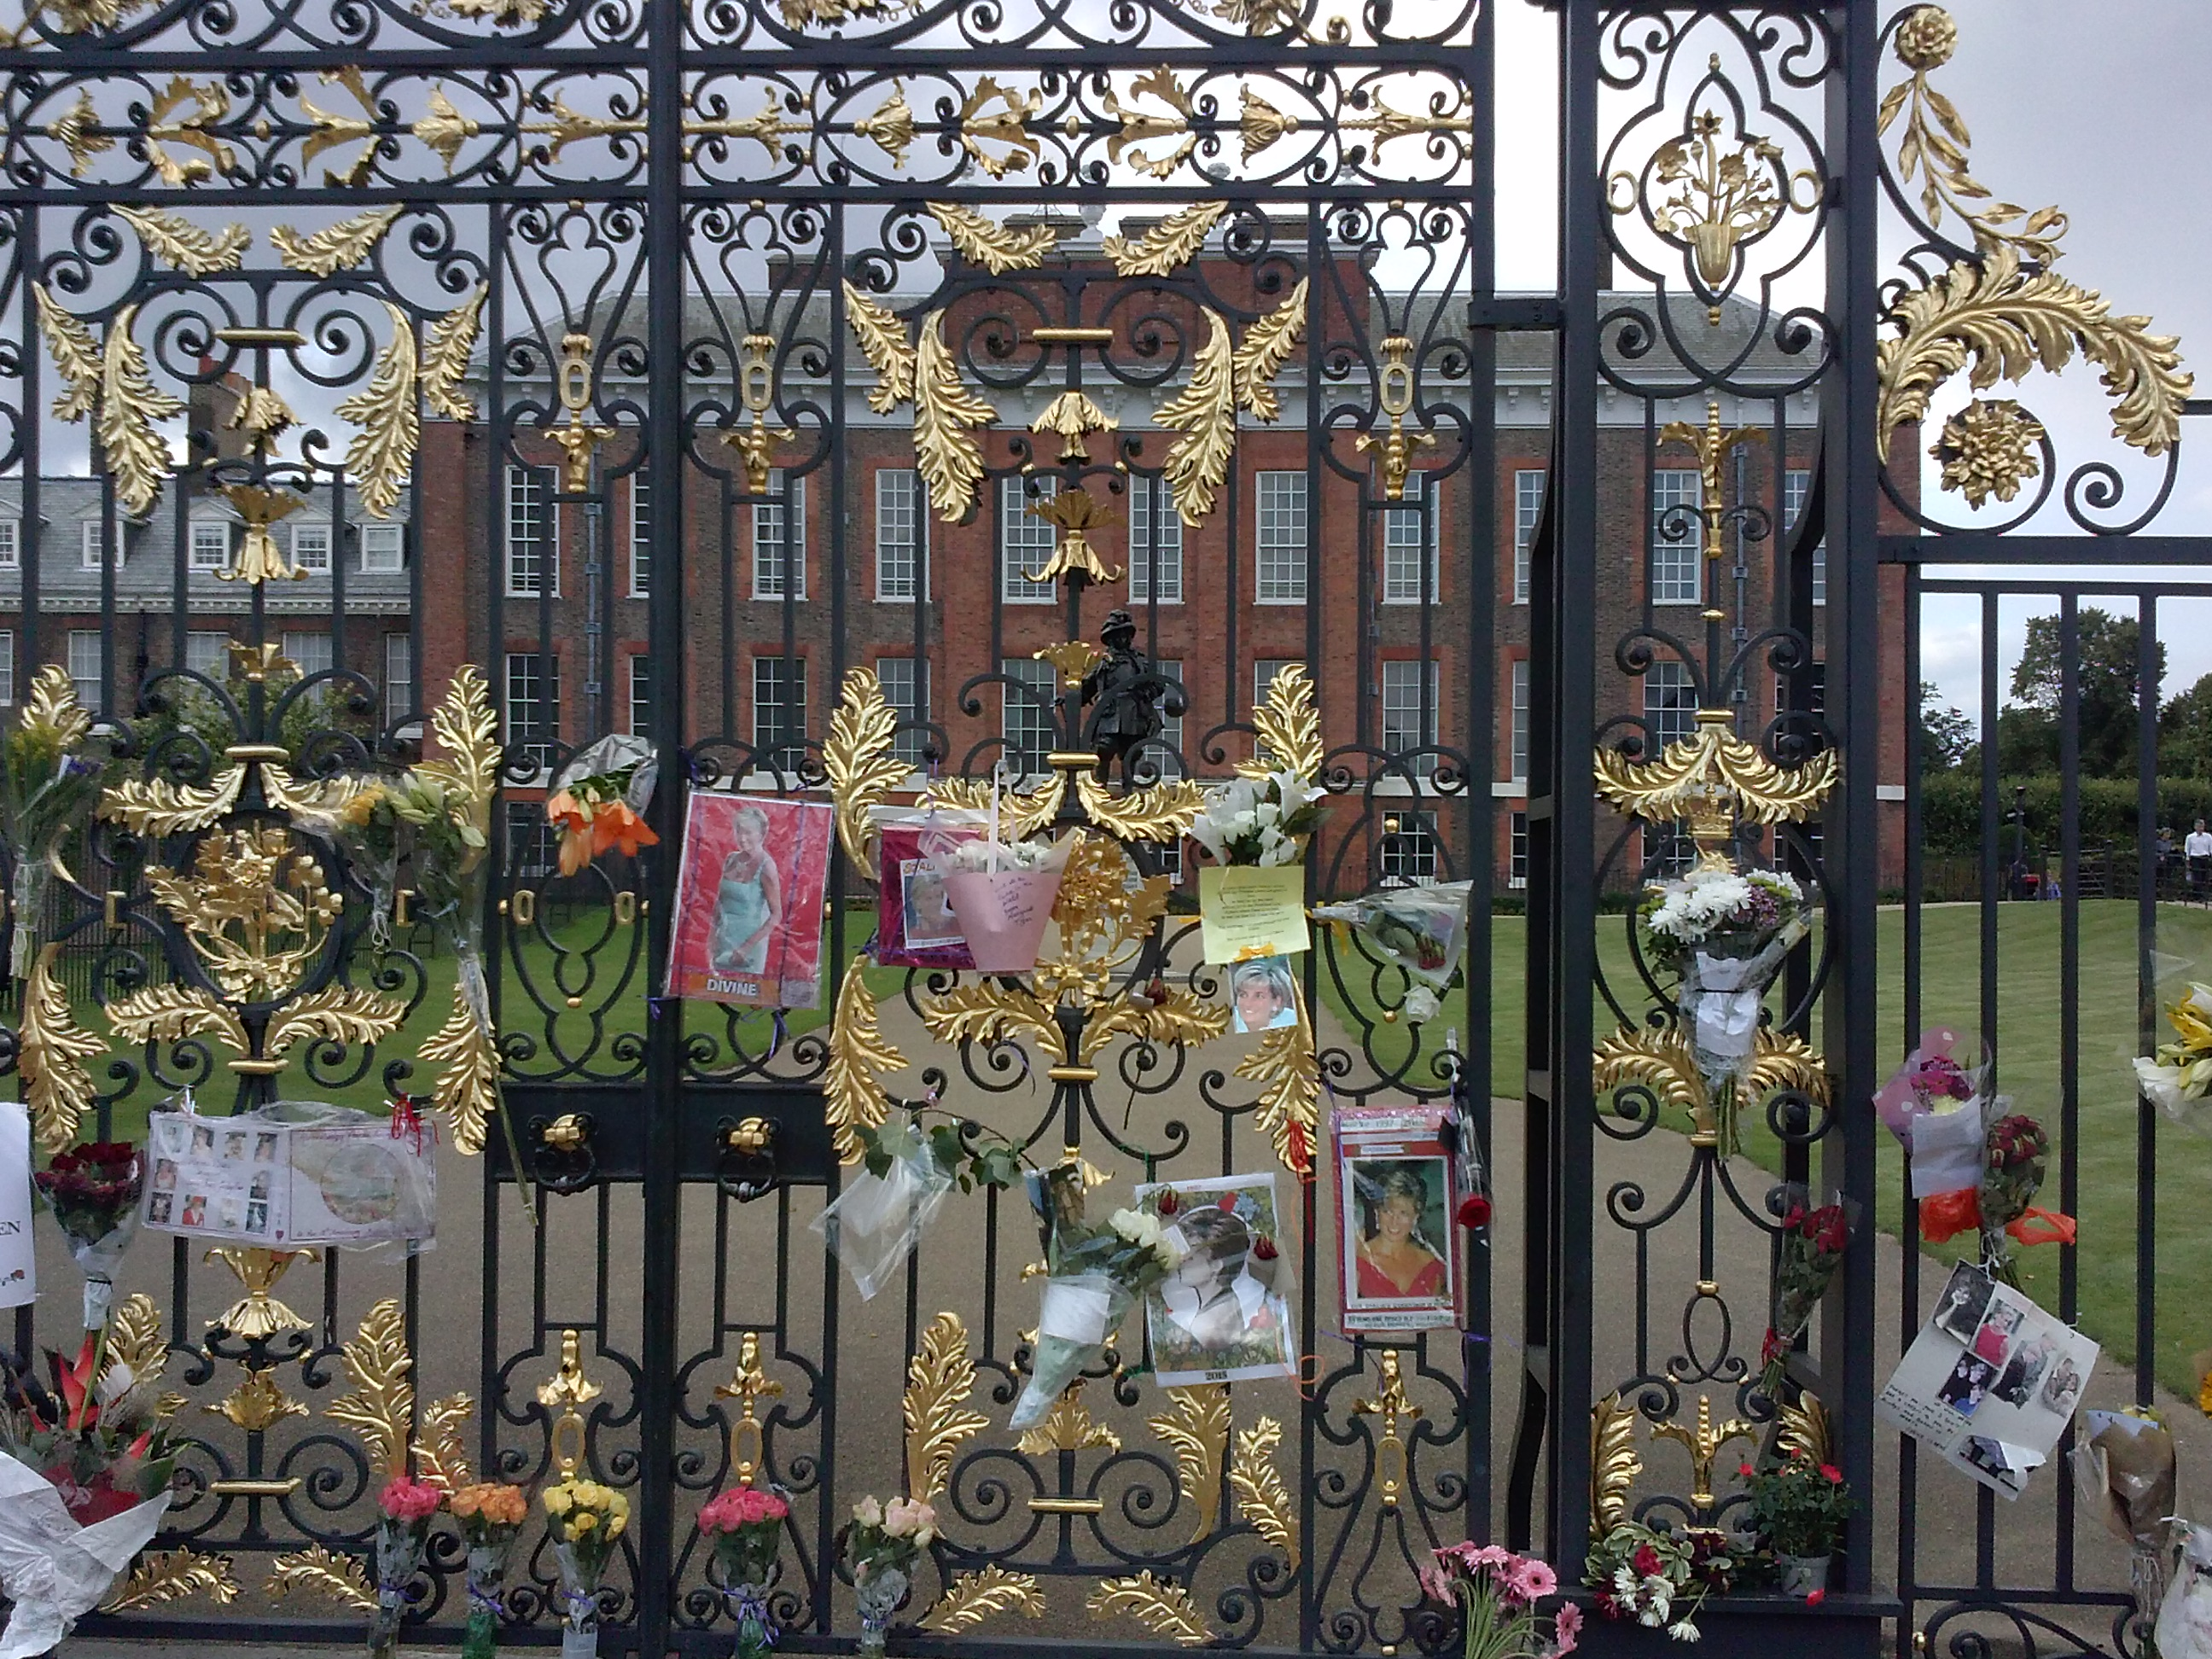 CAPAStudyAbroad_London_Fall2015_From_Alyssa_Reimenschneider_-_orientation_post_-_kensington_palace.jpg